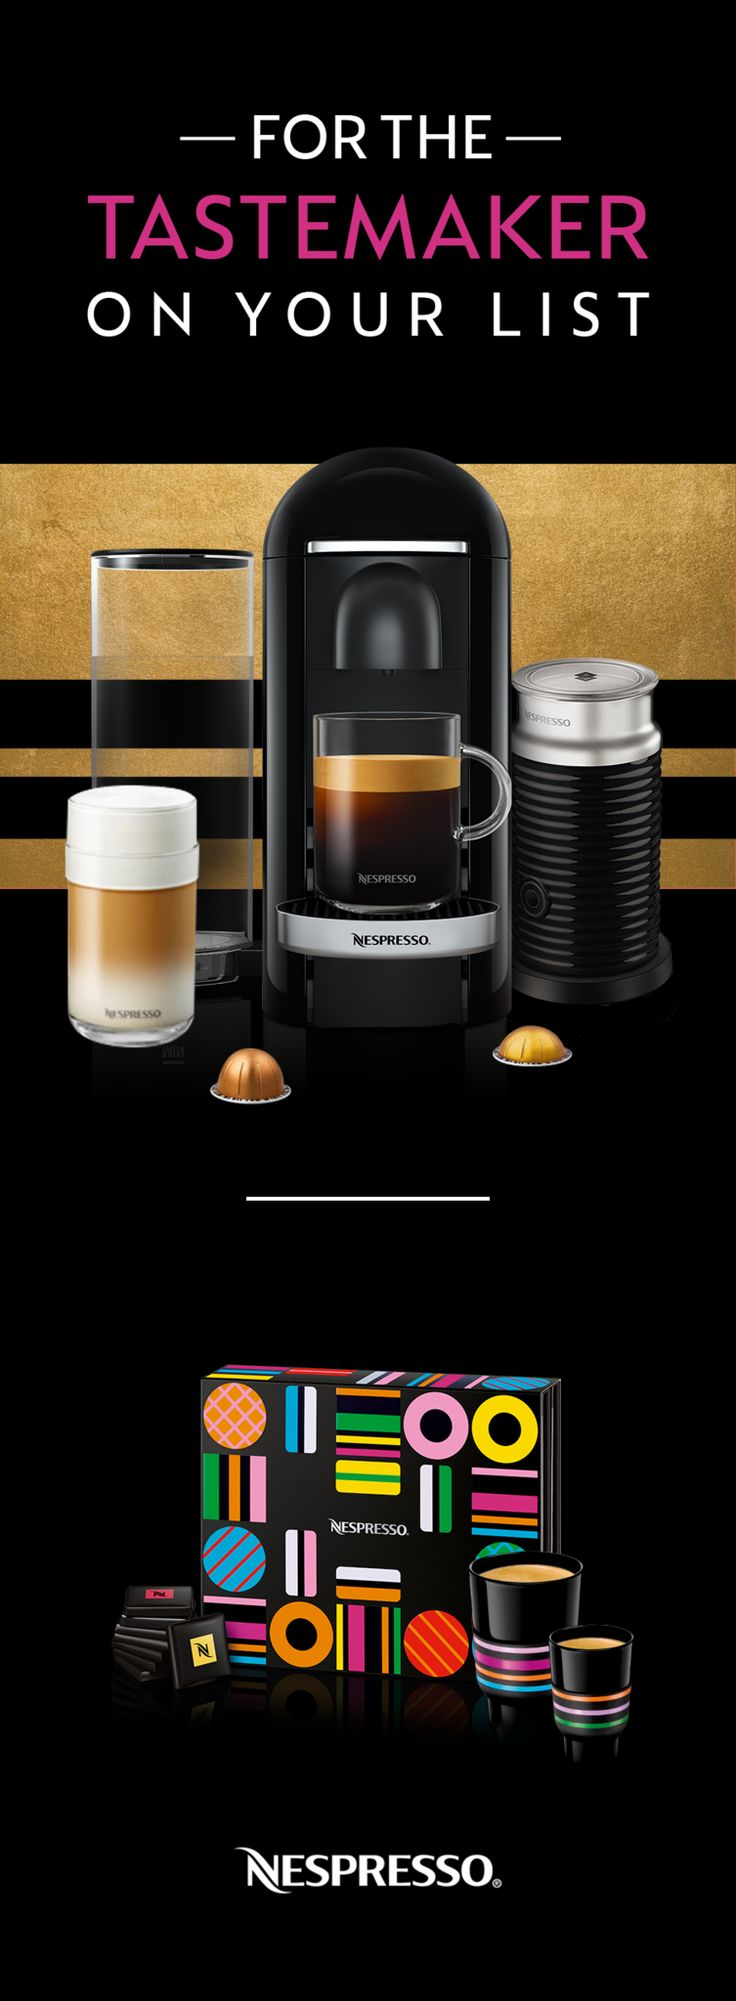 This holiday season, pair a Nespresso VertuoPlus with colorful, candy-inspired coffee, espresso, and accessories from our 2017 Festive line, featuring designs by Craig & Karl. If you're gifting yourself a Nespresso Expert this holiday, add a pop of color with our limited edition, candy-inspired capsules, travel mugs, and more—designed by master illustrators Craig & Karl.